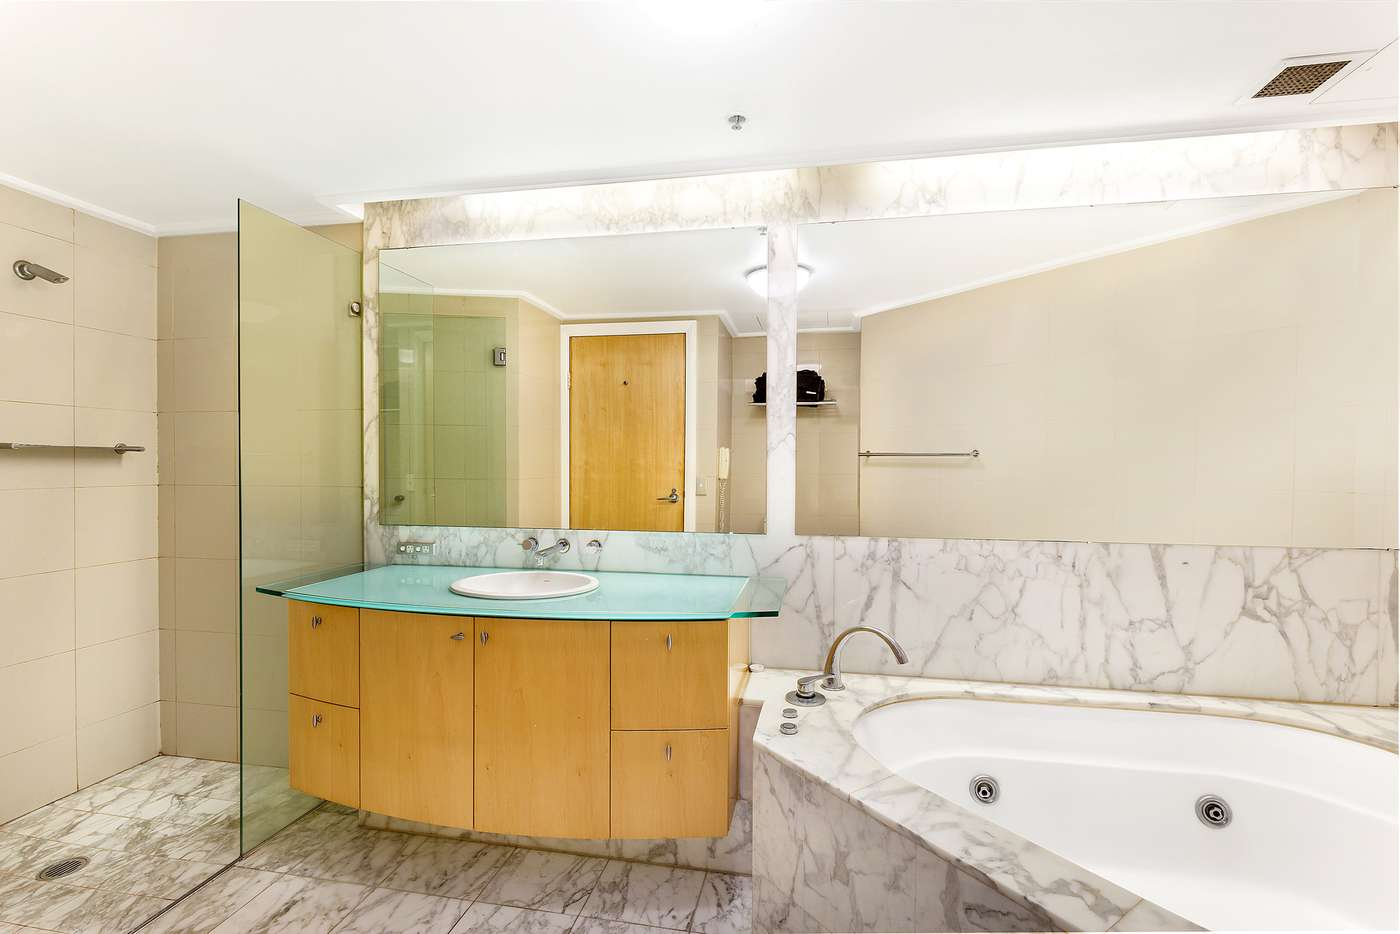 Sixth view of Homely apartment listing, 512/61 Macquarie Street, Sydney NSW 2000